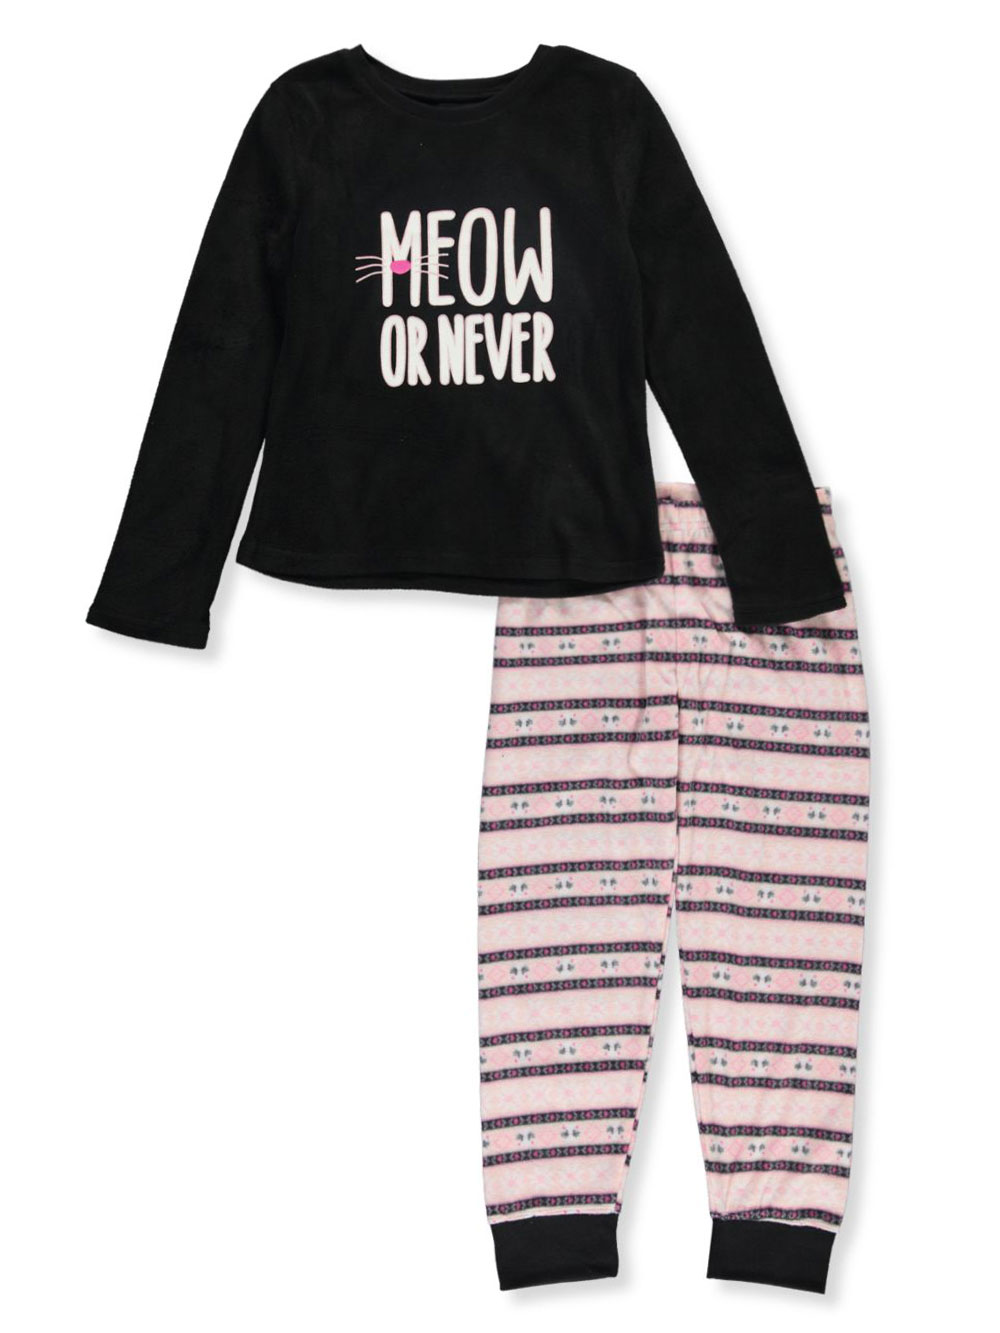 Size 16 Pajamas for Girls